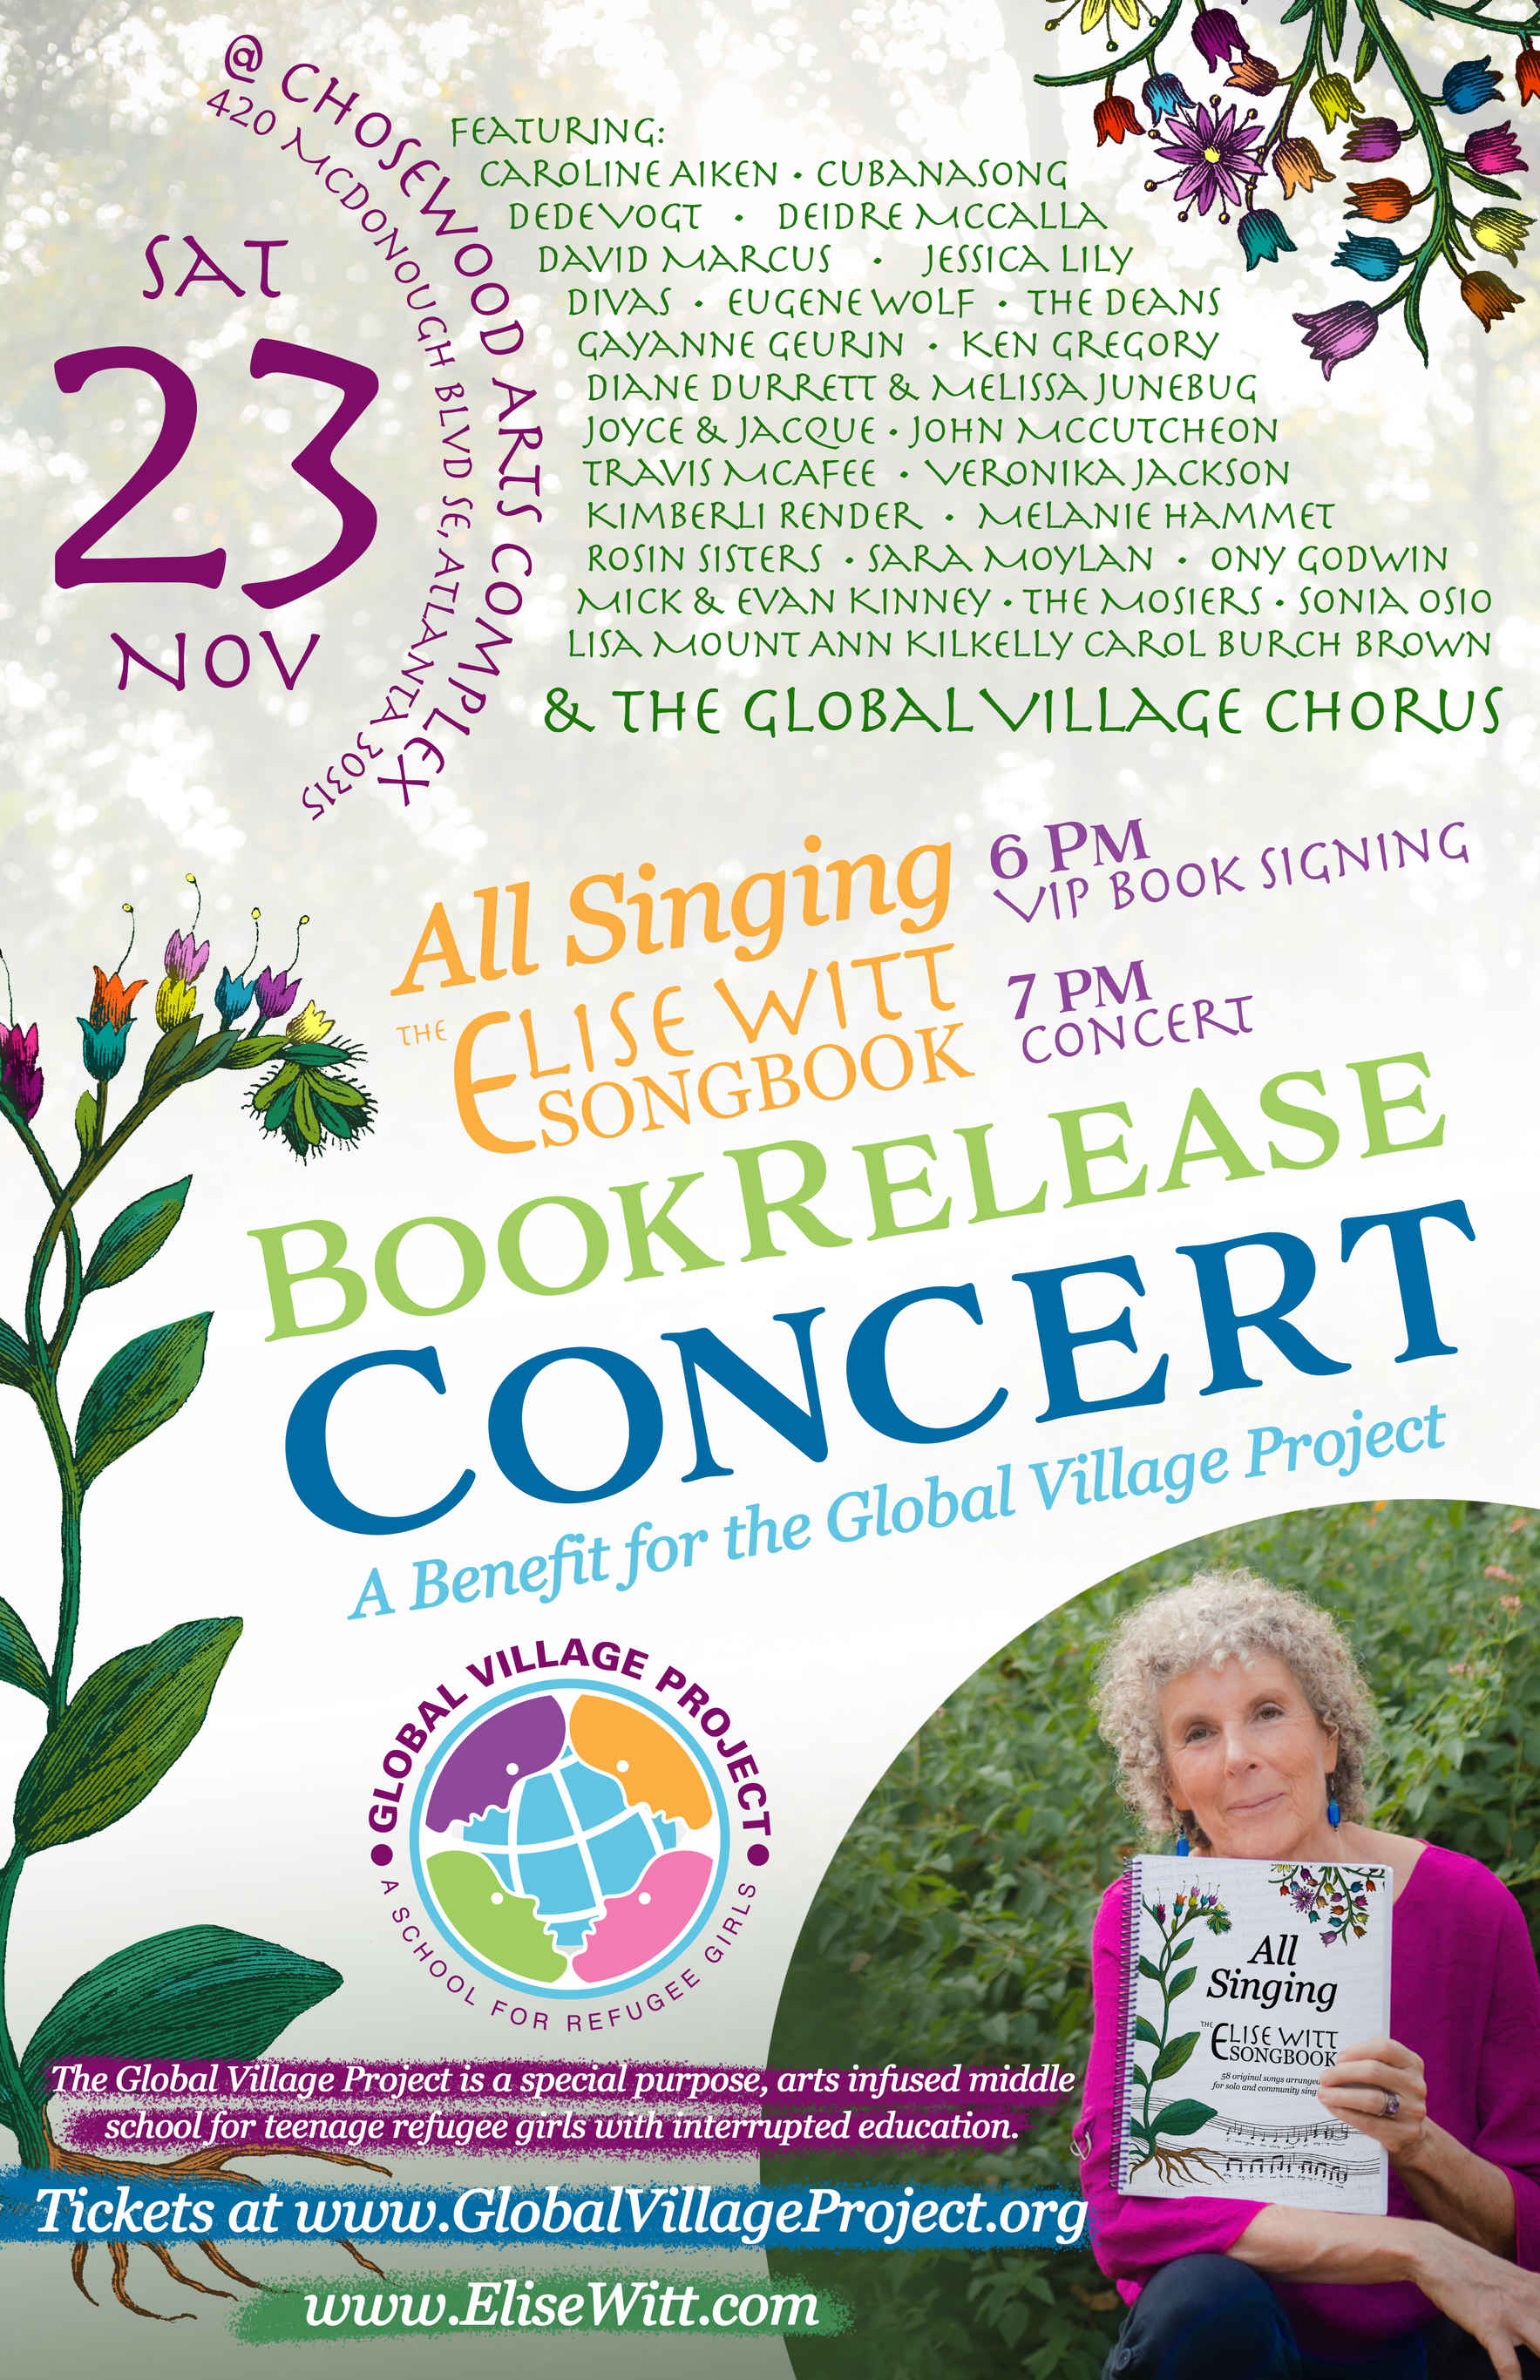 All Singing: The Elise Witt Songbook Release Concert image